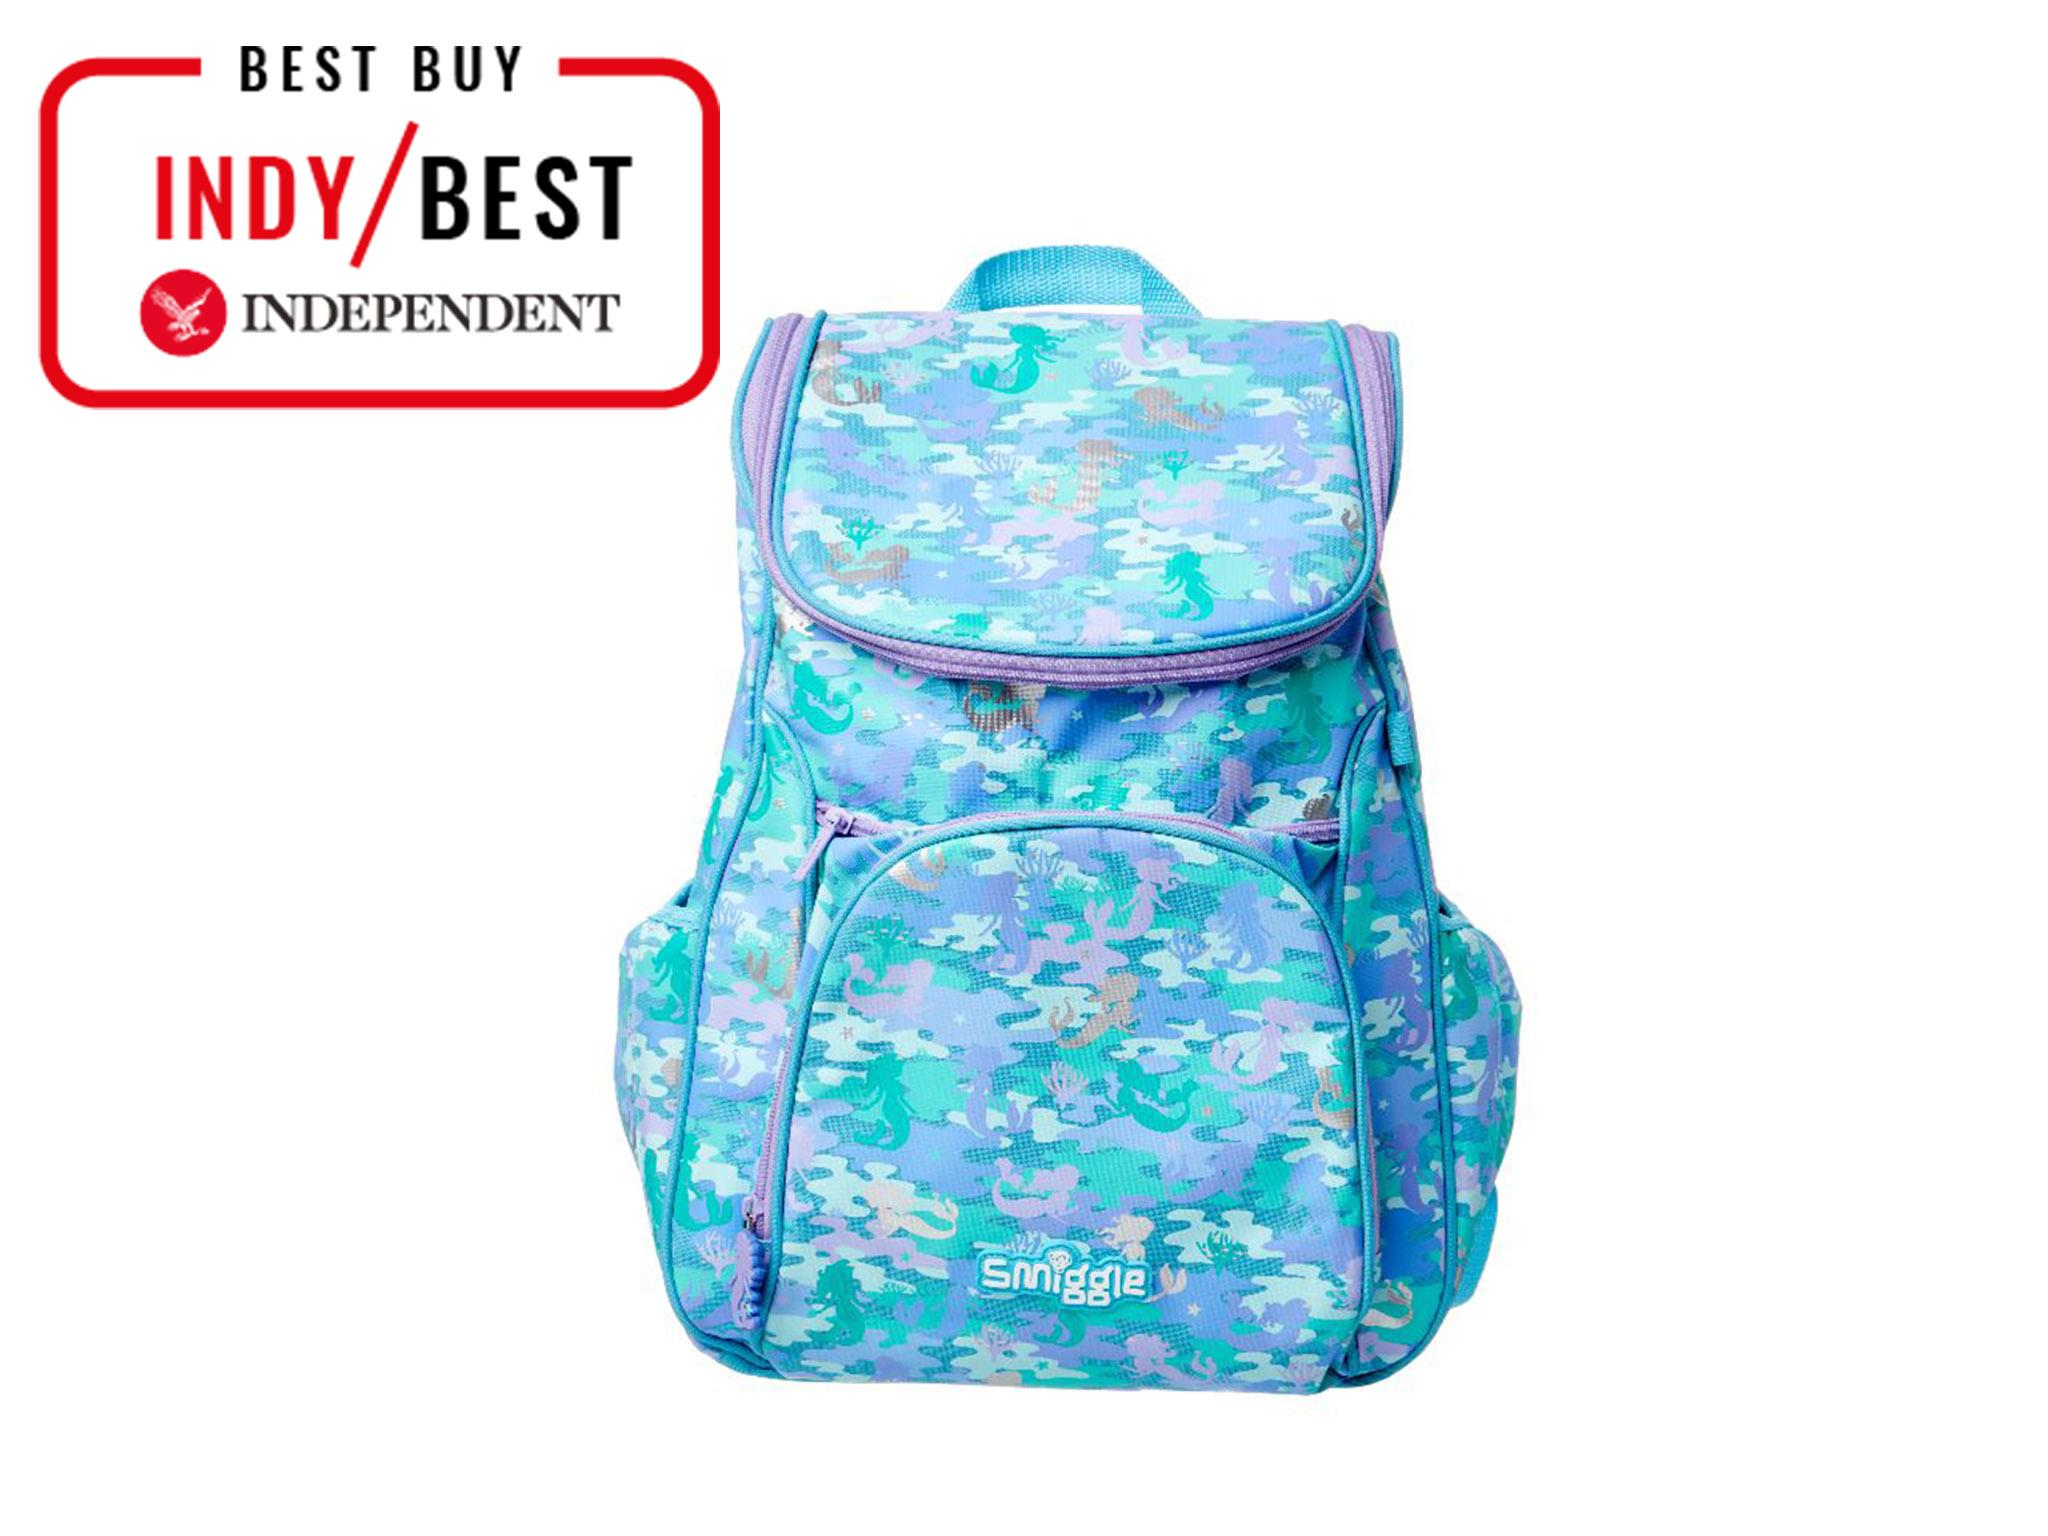 Boys' Accessories Clothes, Shoes & Accessories Bright Canvas Backpack Travel Rucksack Adjustable Bag Boys Girls College Uni School Goods Of Every Description Are Available